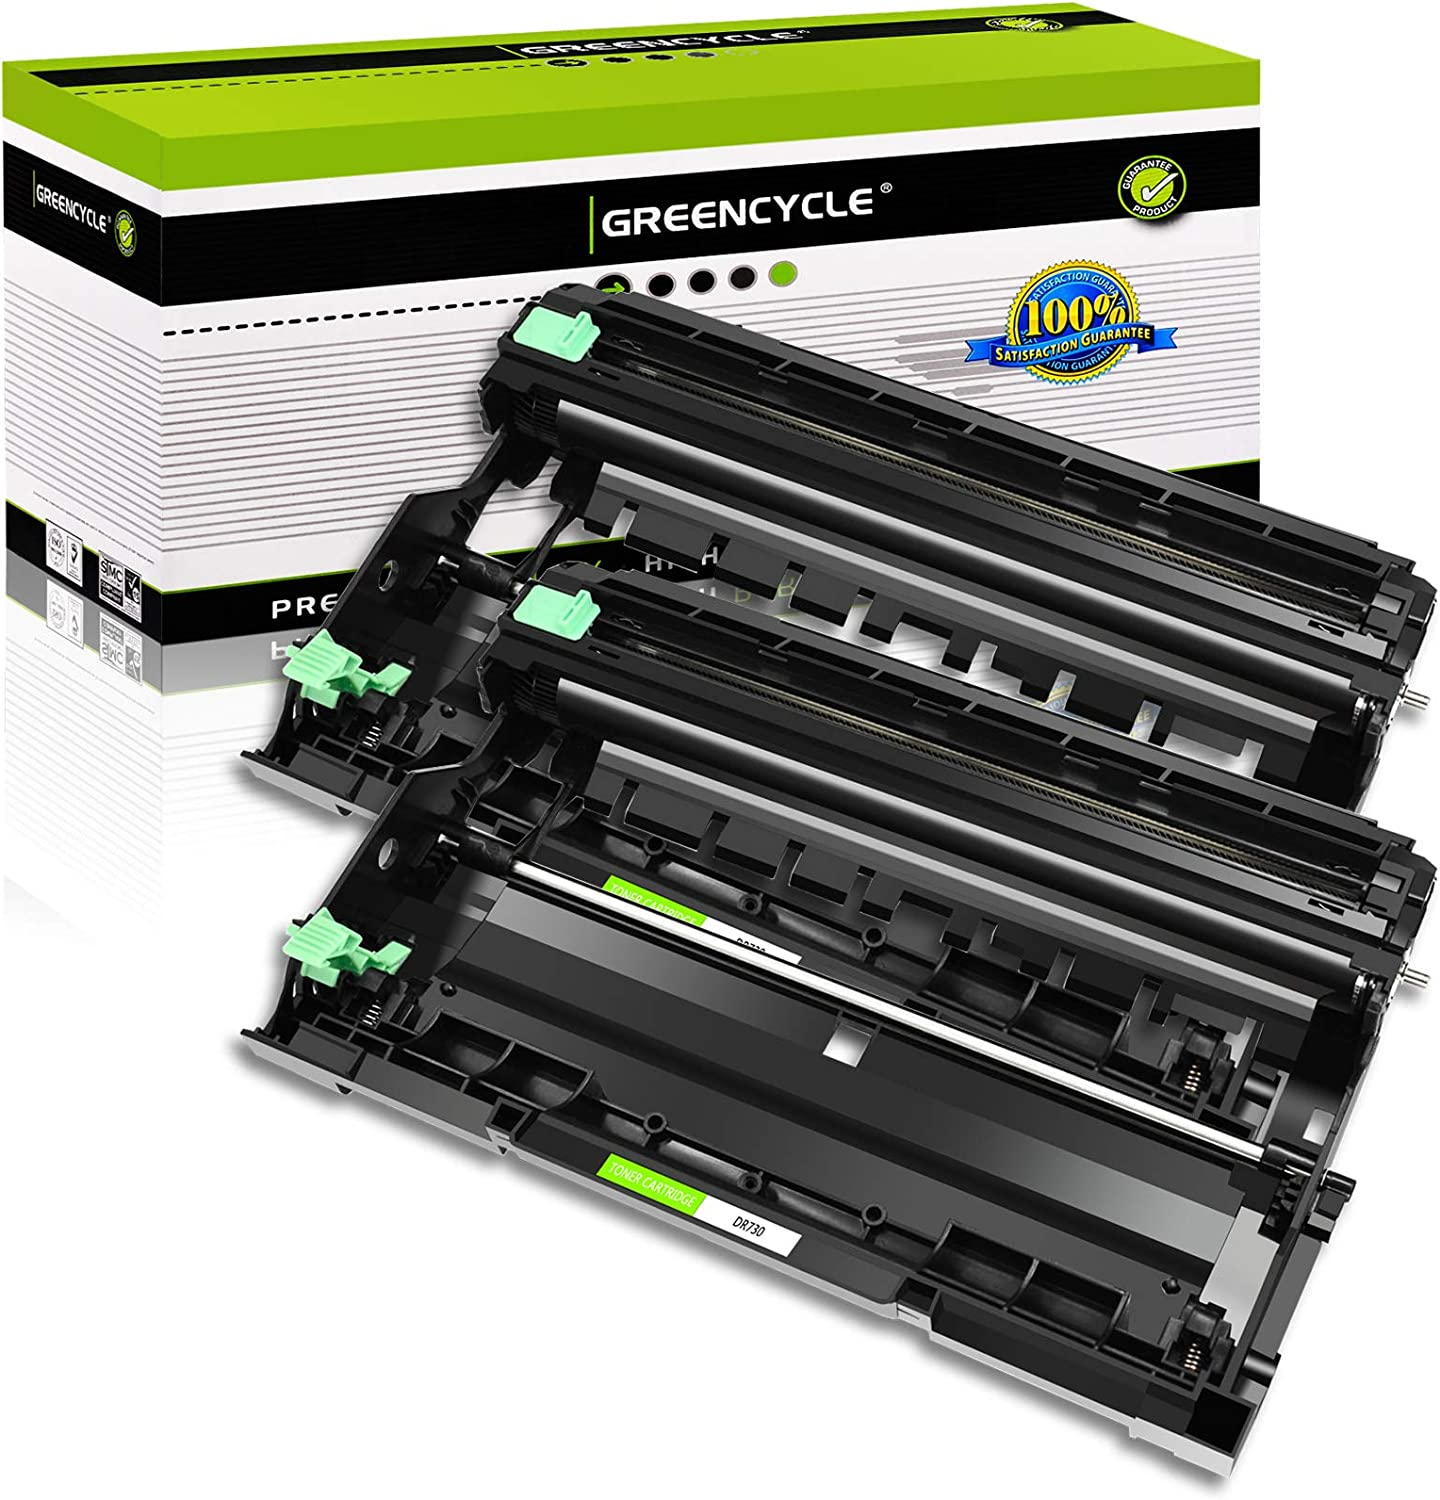 Page Yield Up to 12,000 Pages Black, 8 Pack GREENCYCLE Compatible for Brother DR730 DR-730 Drum Unit Replacement for HL-L2350DW HL-L2370DW HL-L2390DW HL-L2395DW DCP-L2550DW MFC-L2750DWXL